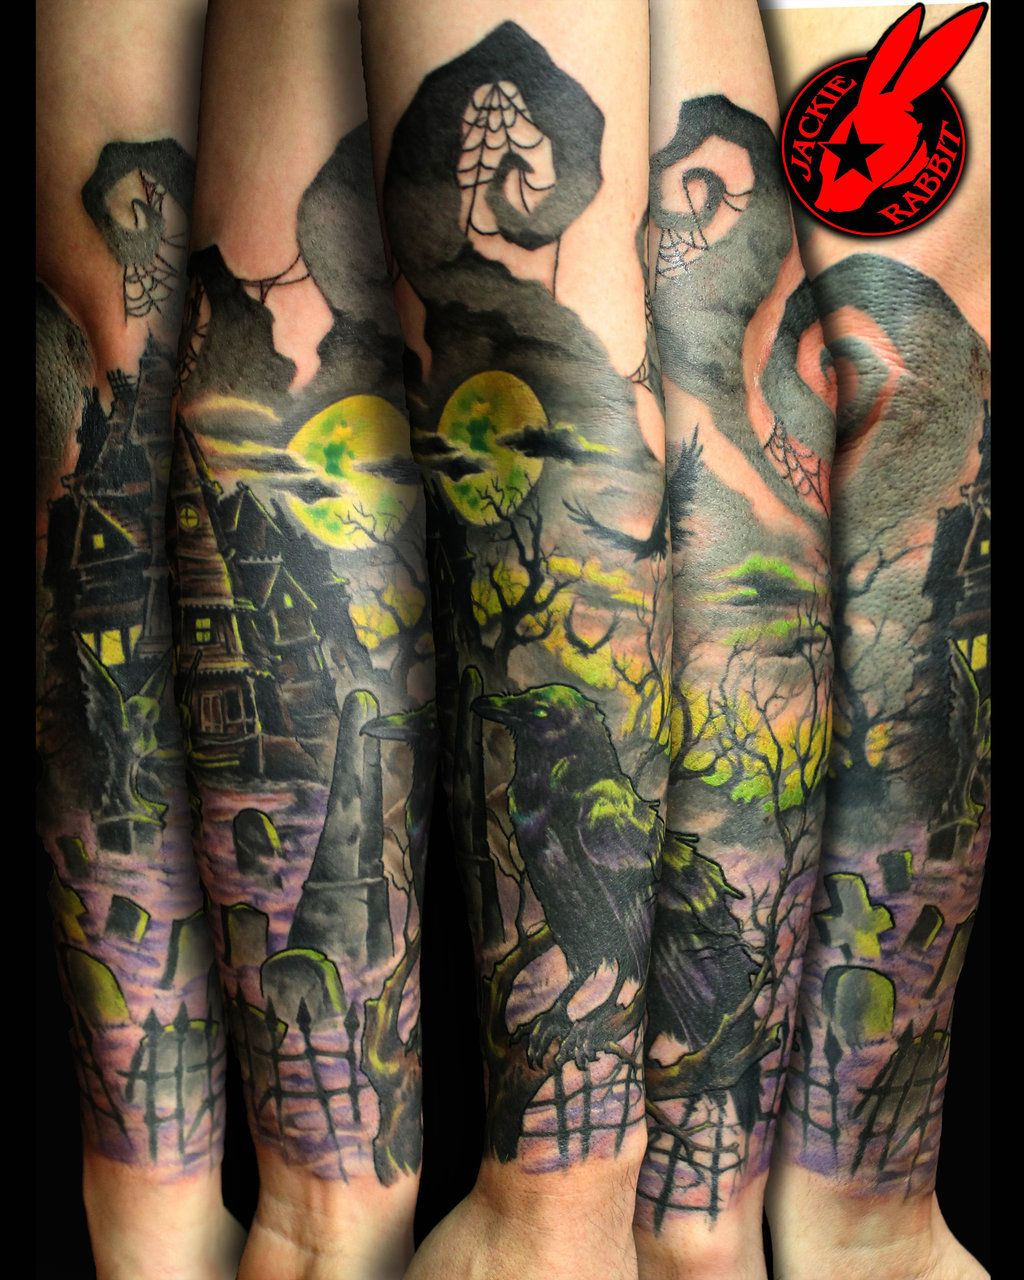 Cemetery and graveyard tattoo on half sleeve - Graveyard Tattoos Graveyard Crow Evil Sleeve Tattoo By Jackie Rabbit By Jackierabbit12